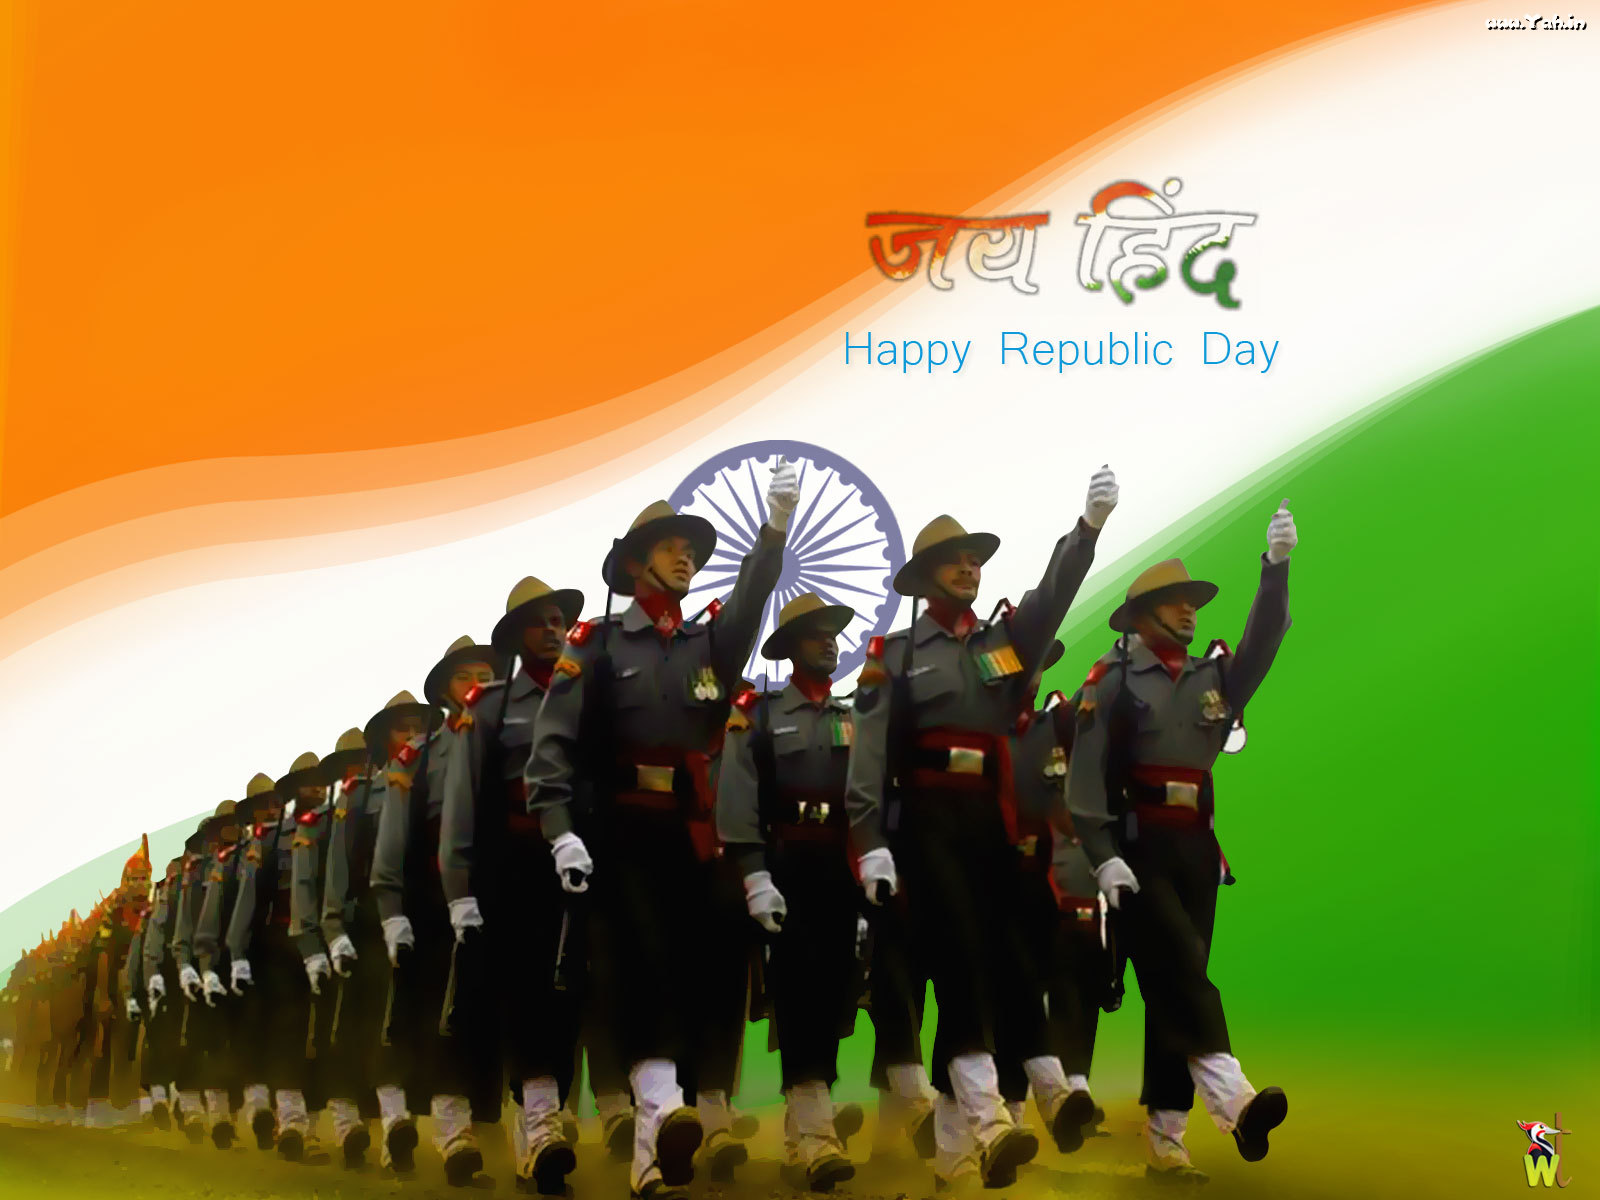 http://4.bp.blogspot.com/_jldOYGfgy94/TT026-PZq2I/AAAAAAAADoU/WvN0JuQBbT4/s1600/12-indian-Republic-Day-regiments-of-Armed-Forces-start-their-march-past.jpg